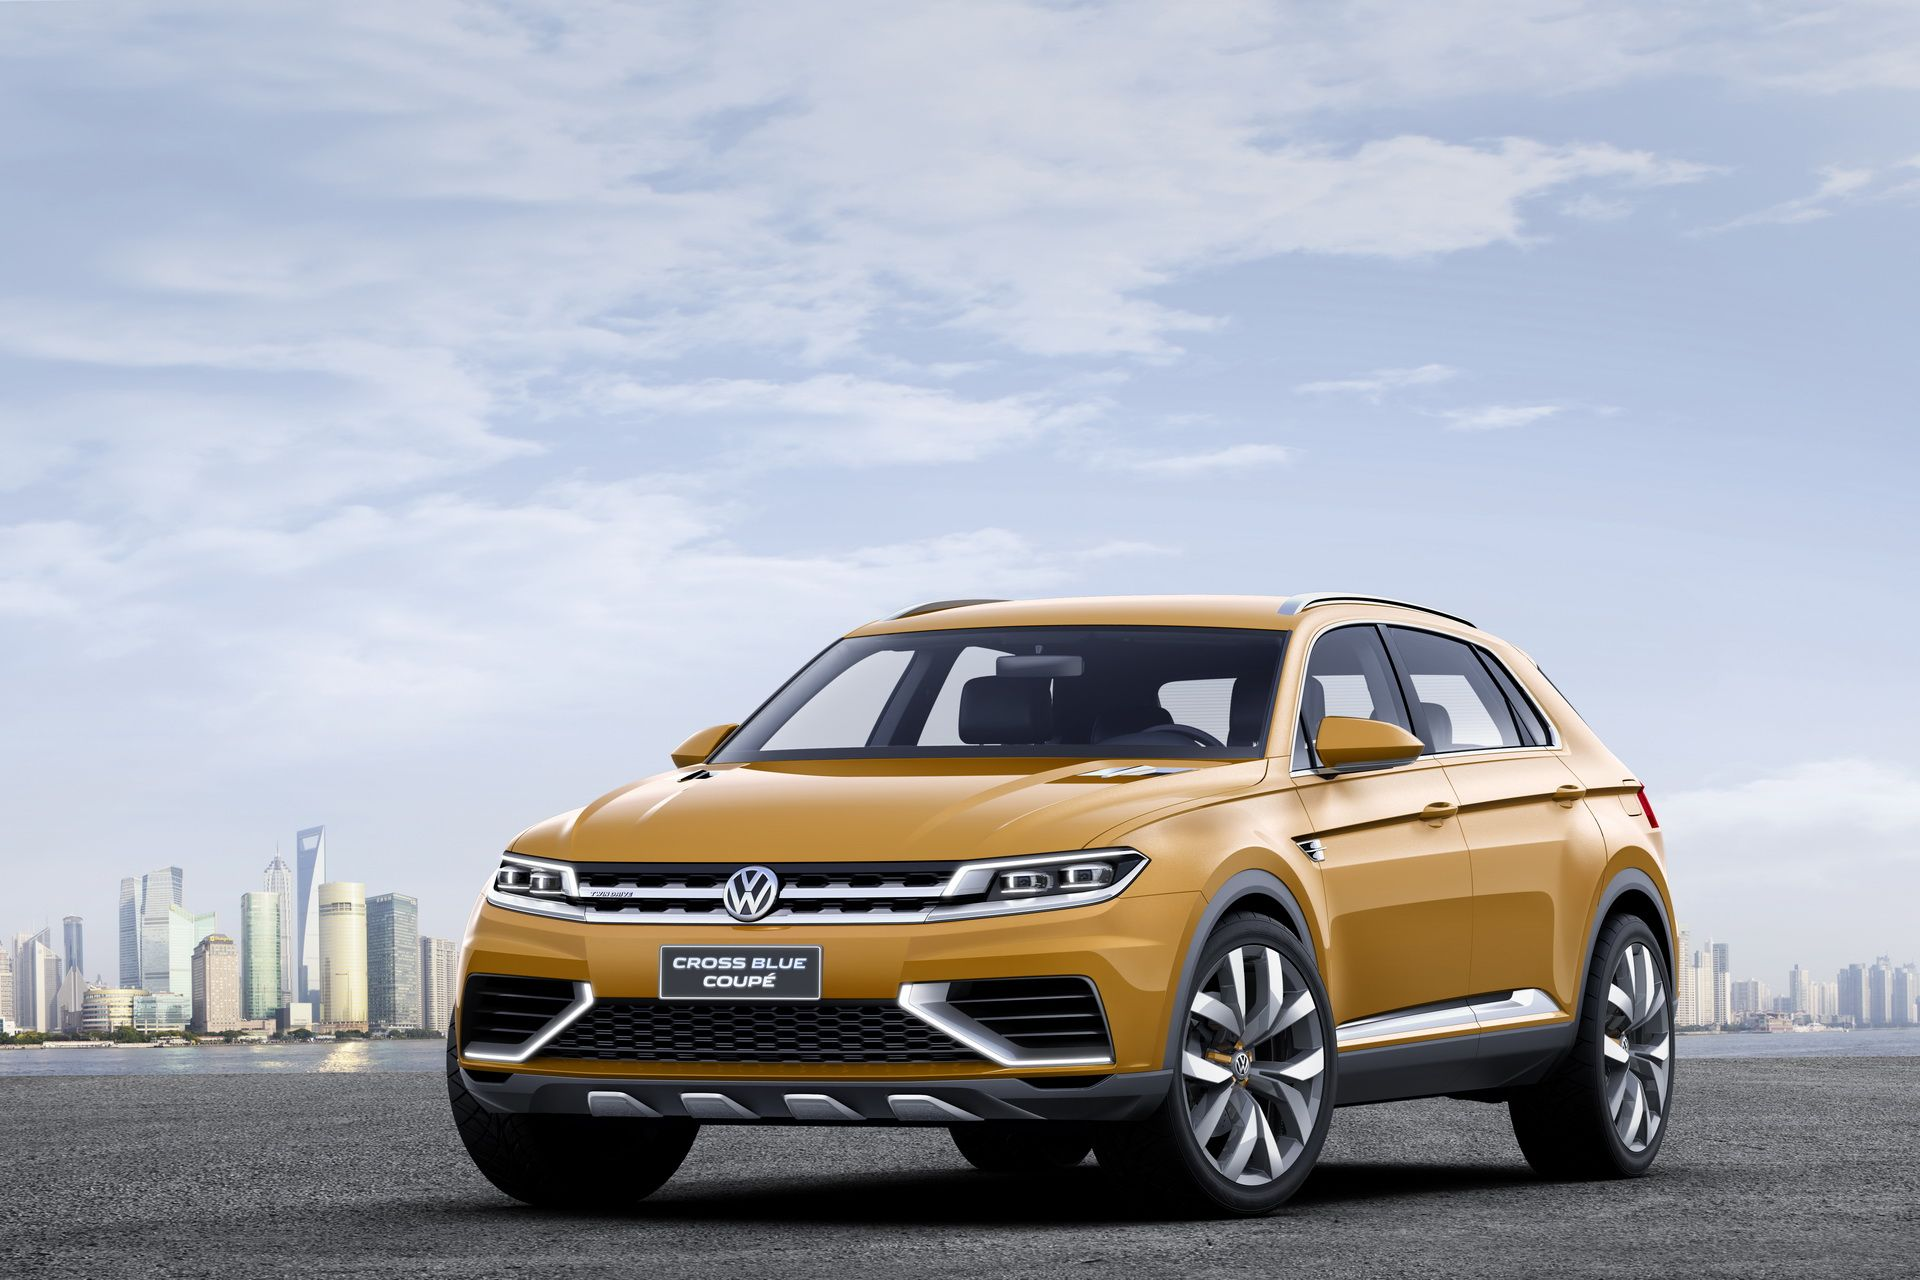 vw-crossblue-coupe-concept-1.jpg